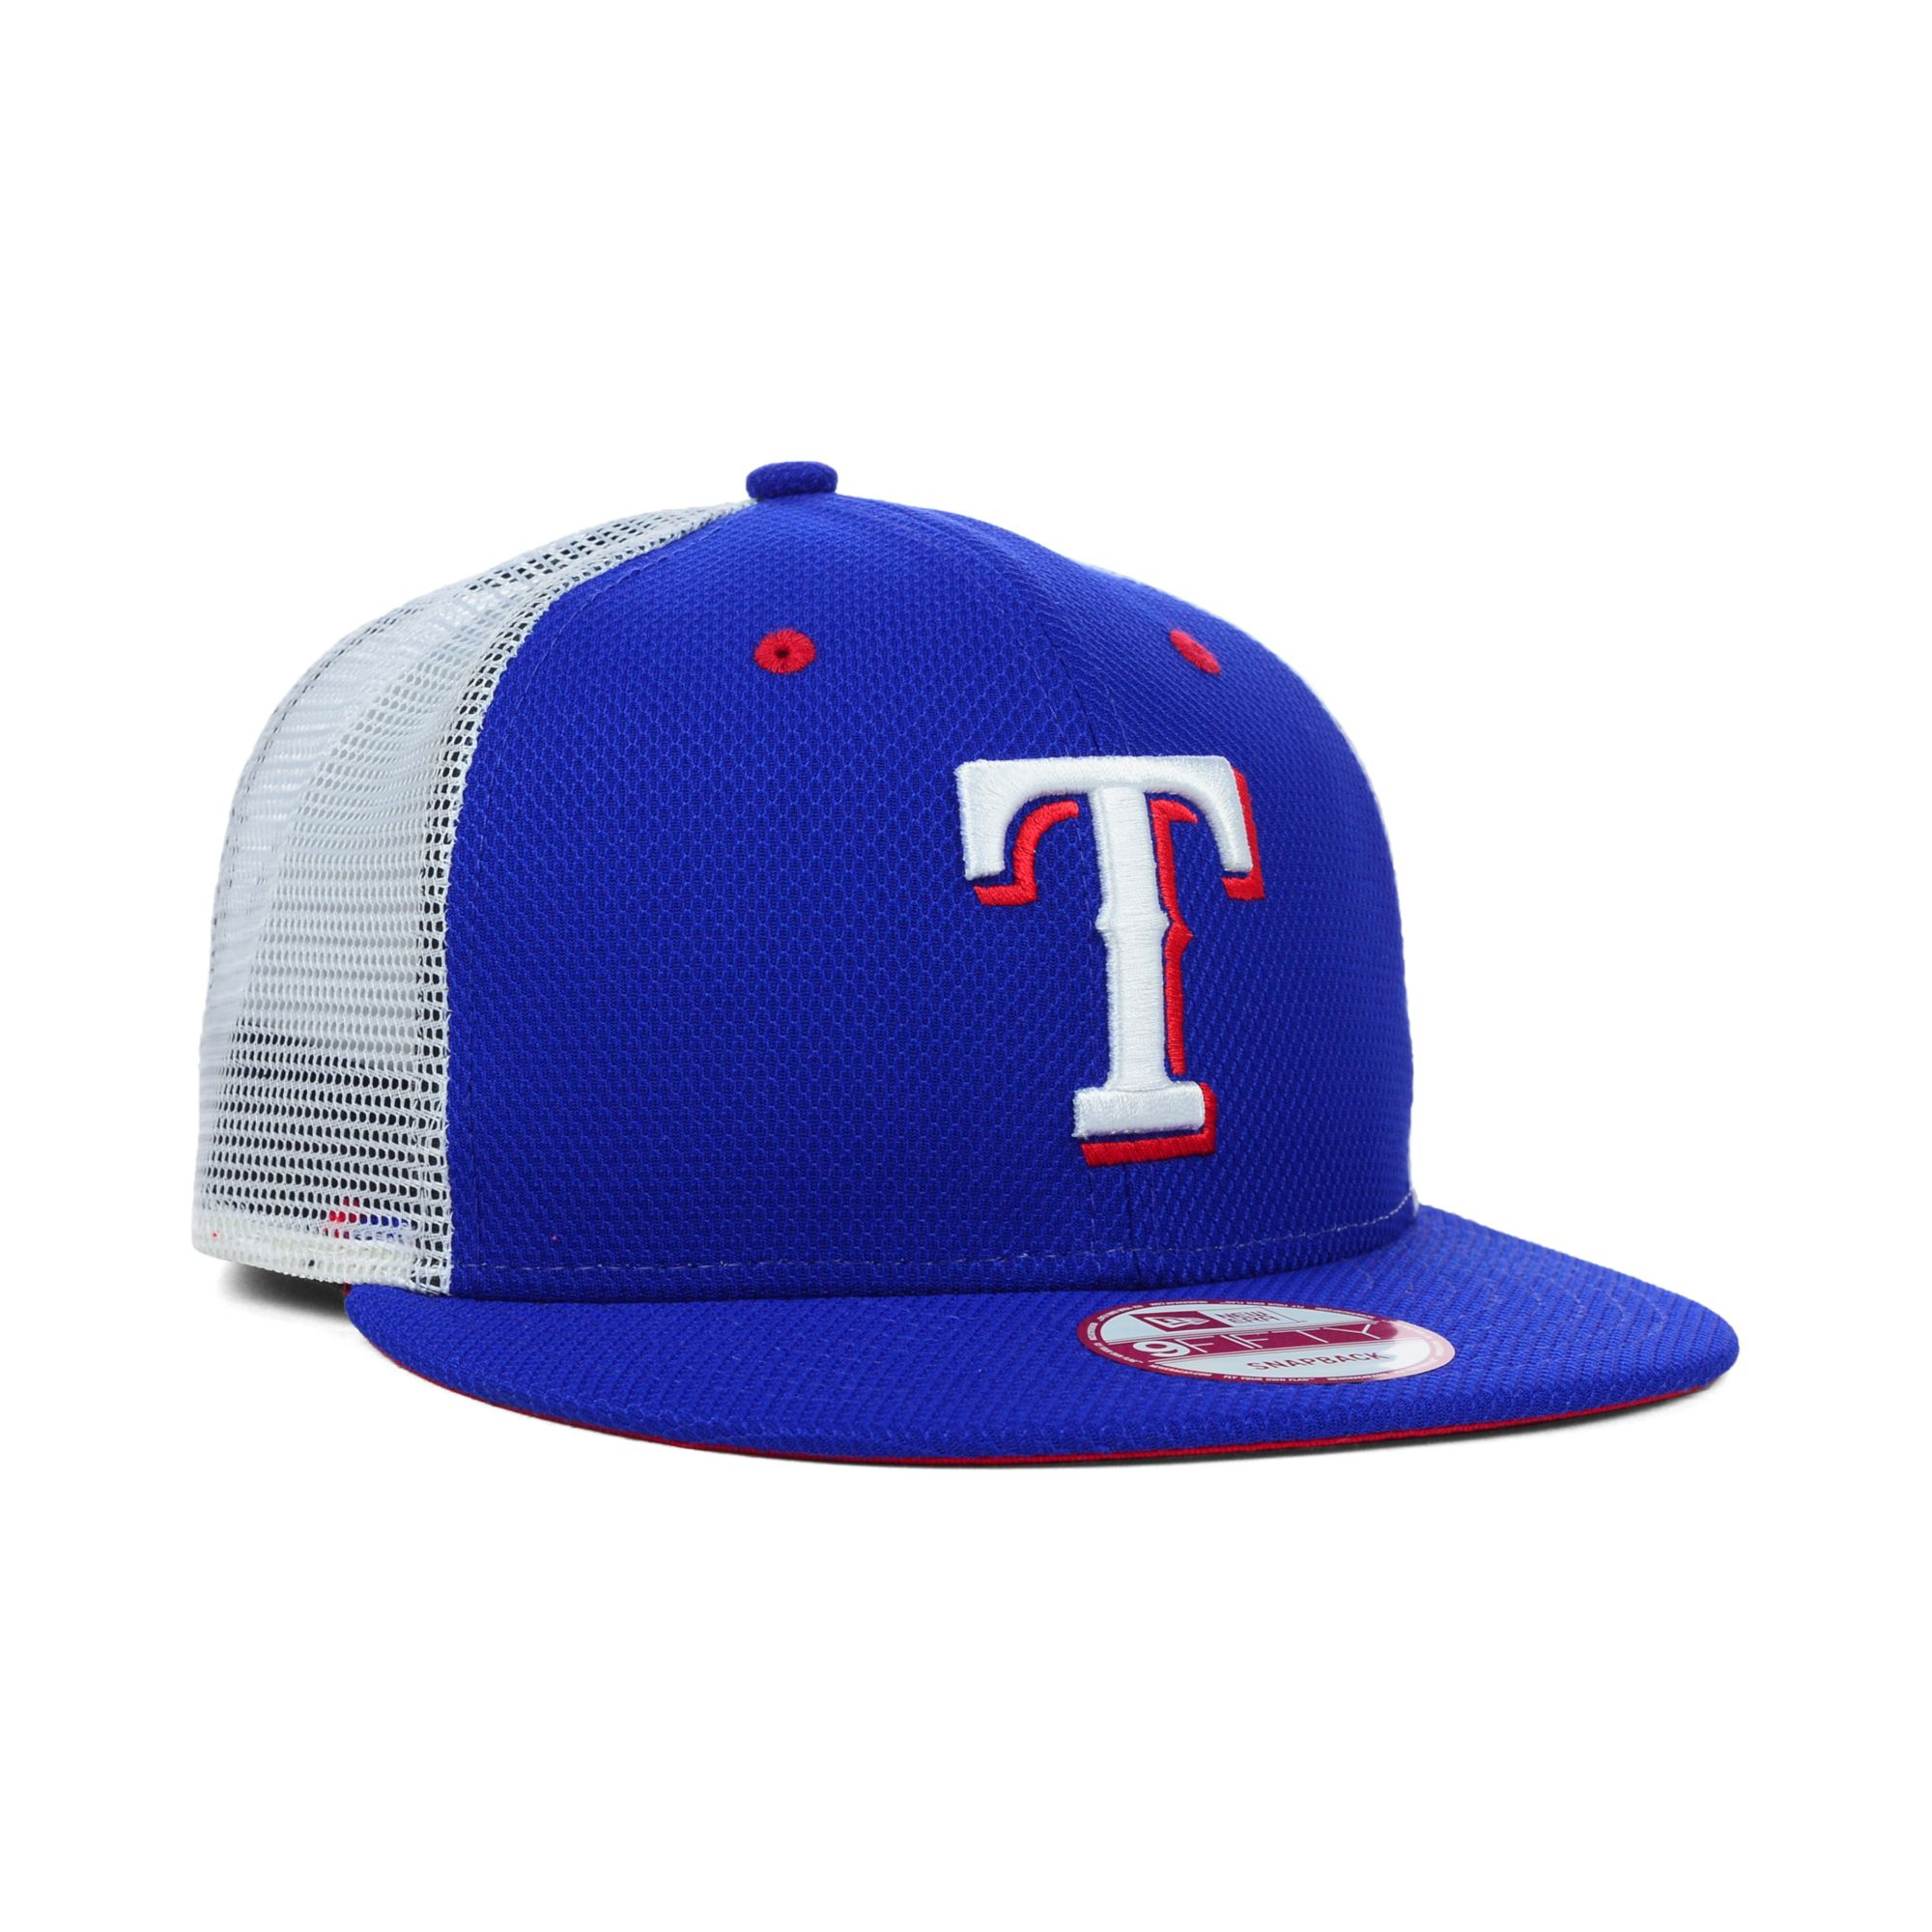 buy popular 9a3f1 be36c ... australia lyst ktz texas rangers mlb diamond mesh 9fifty snapback cap  in c0888 0ac68